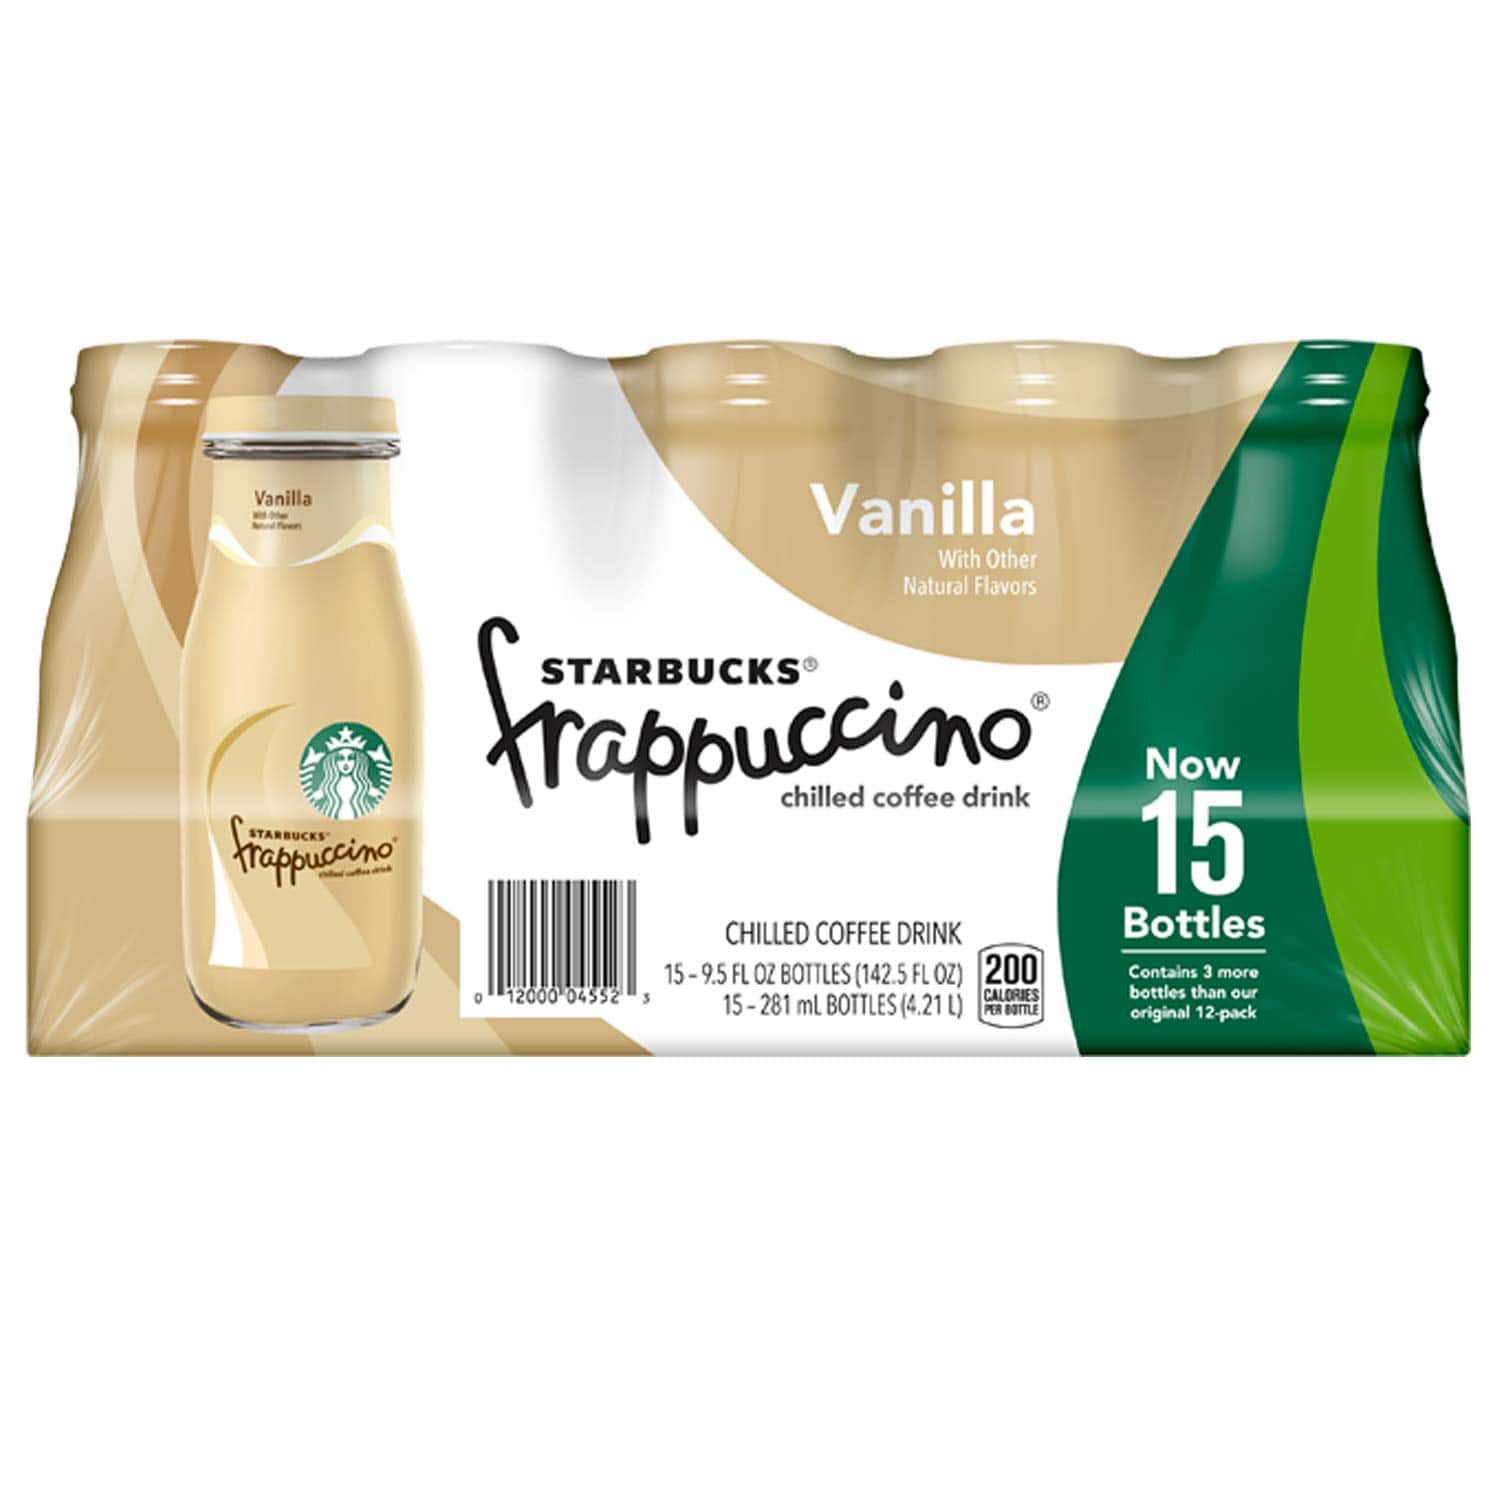 Starbucks Frappuccino, Vanilla, Glass Bottles, 9.5 Fl. Oz (15 Count) $15.75 amazon S&S